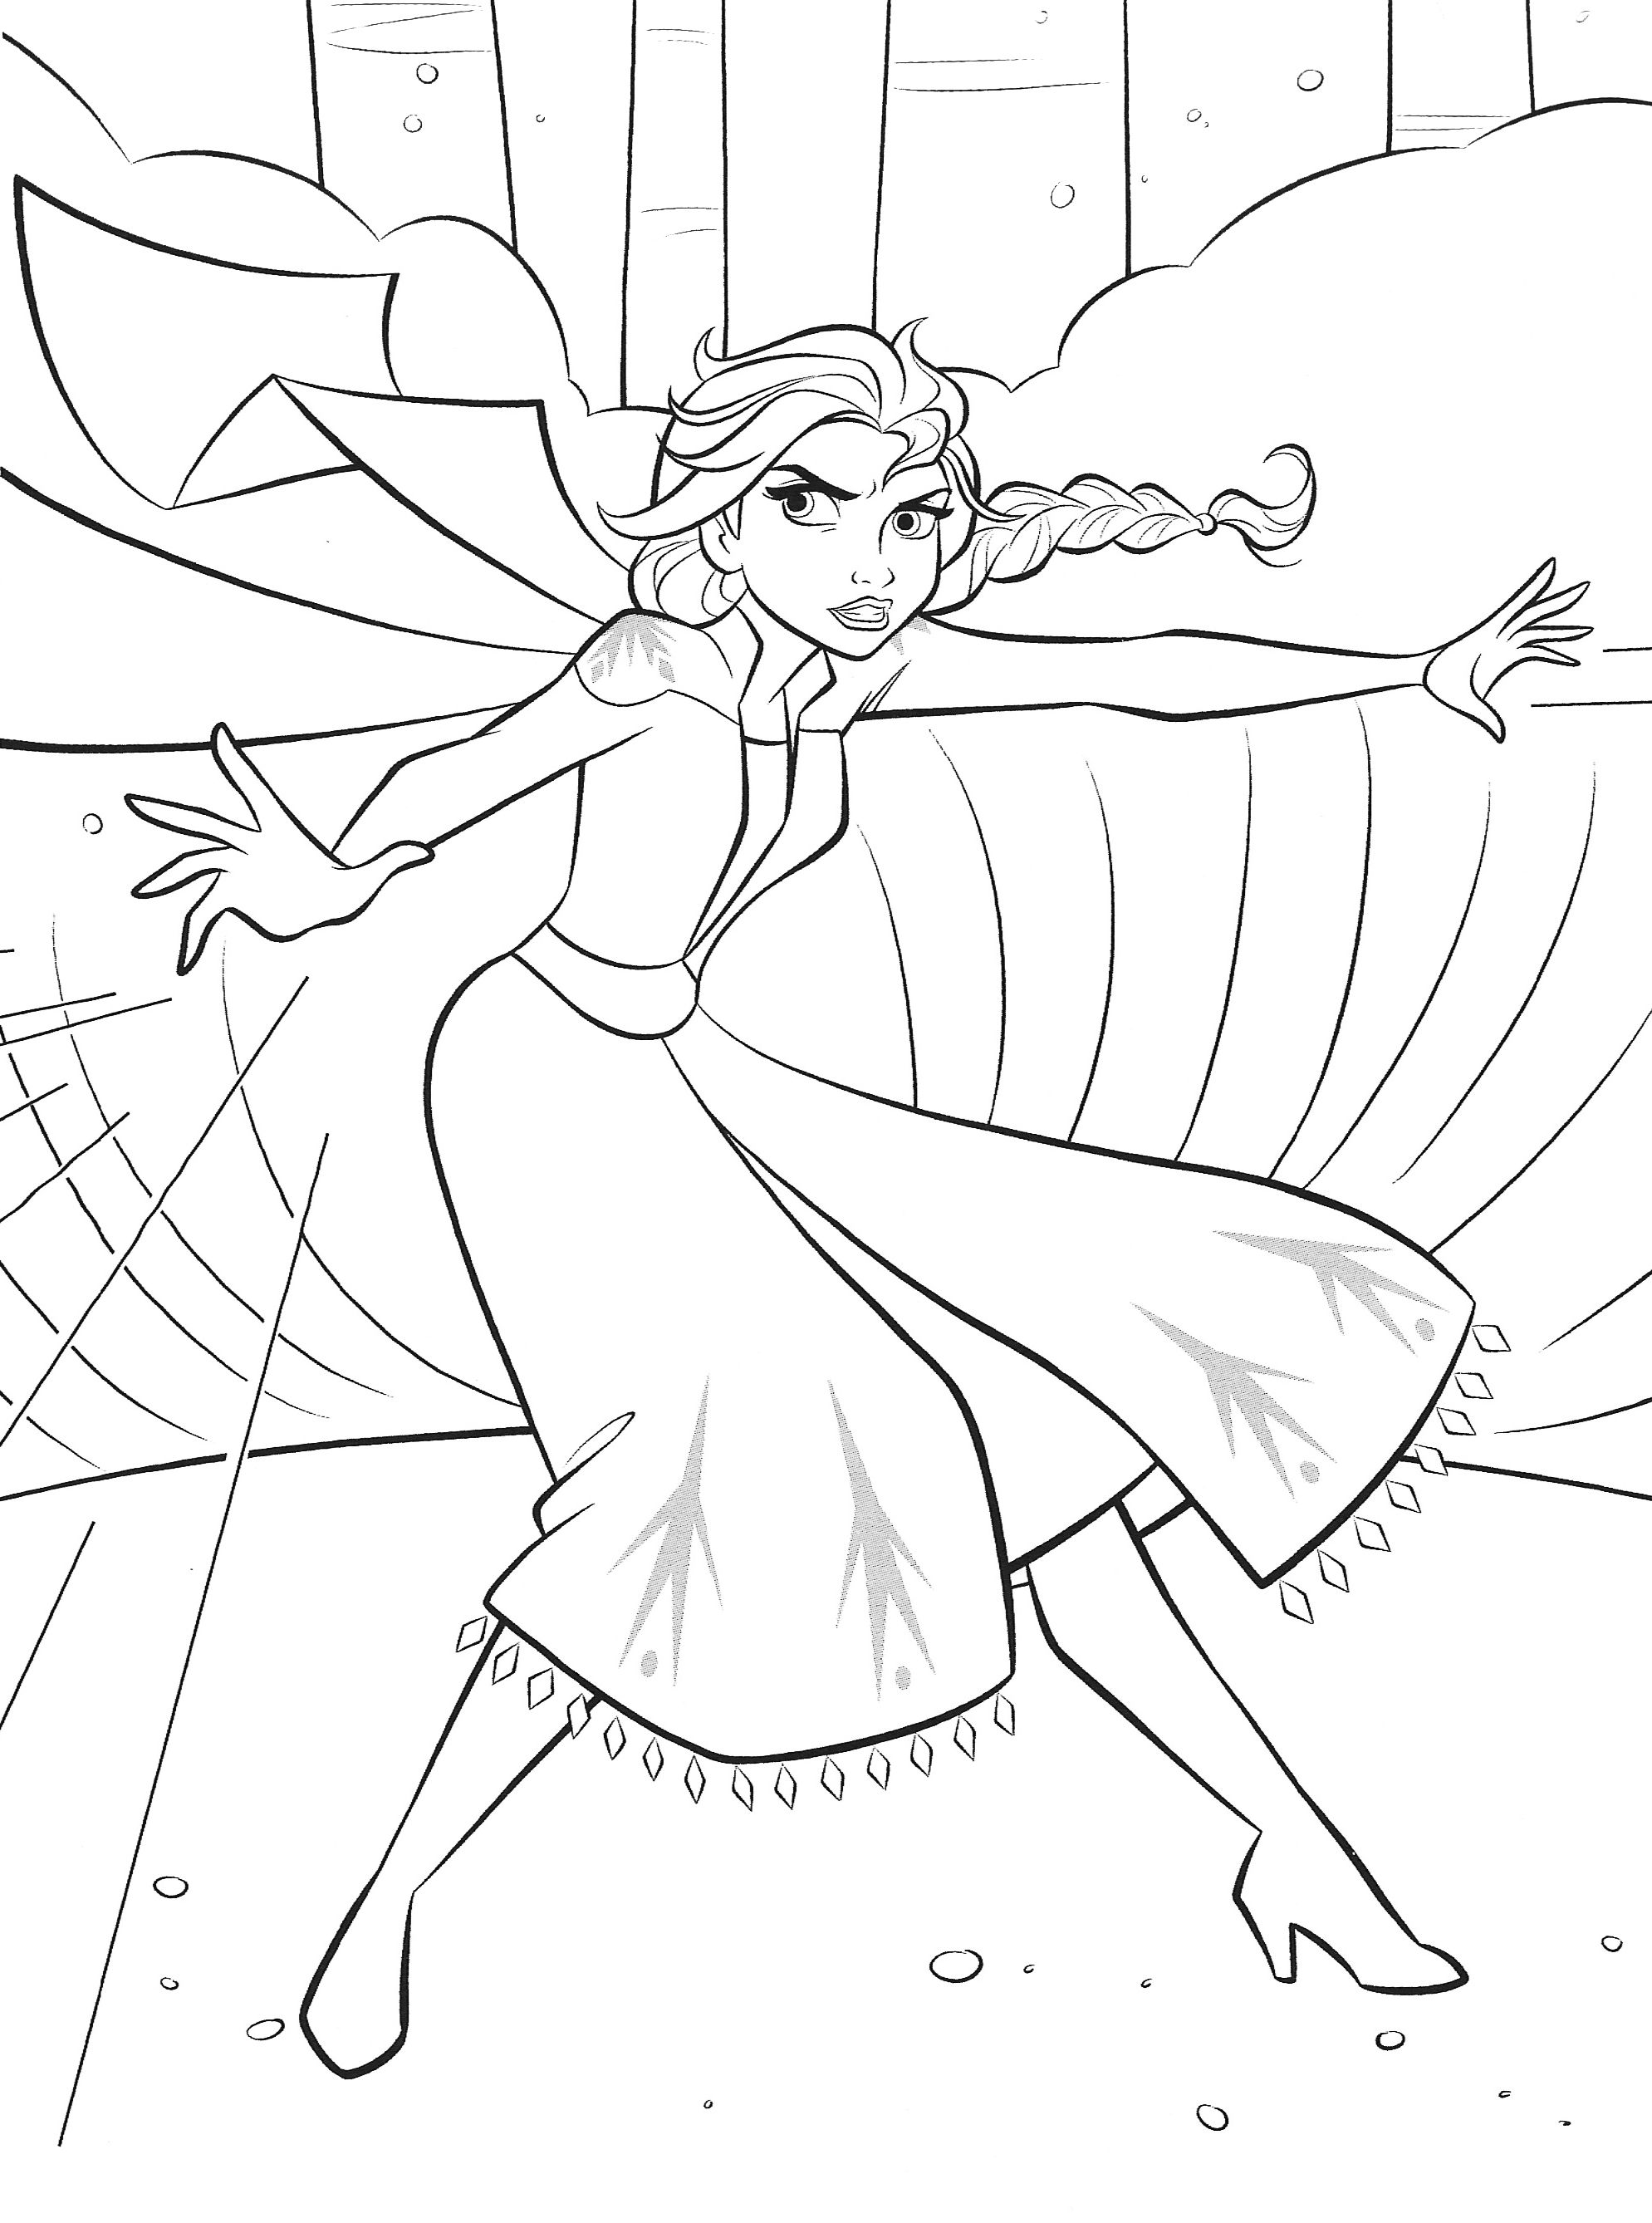 Click To Close Image Click And Hold To Move Elsa Coloring Pages Princess Coloring Pages Disney Princess Coloring Pages